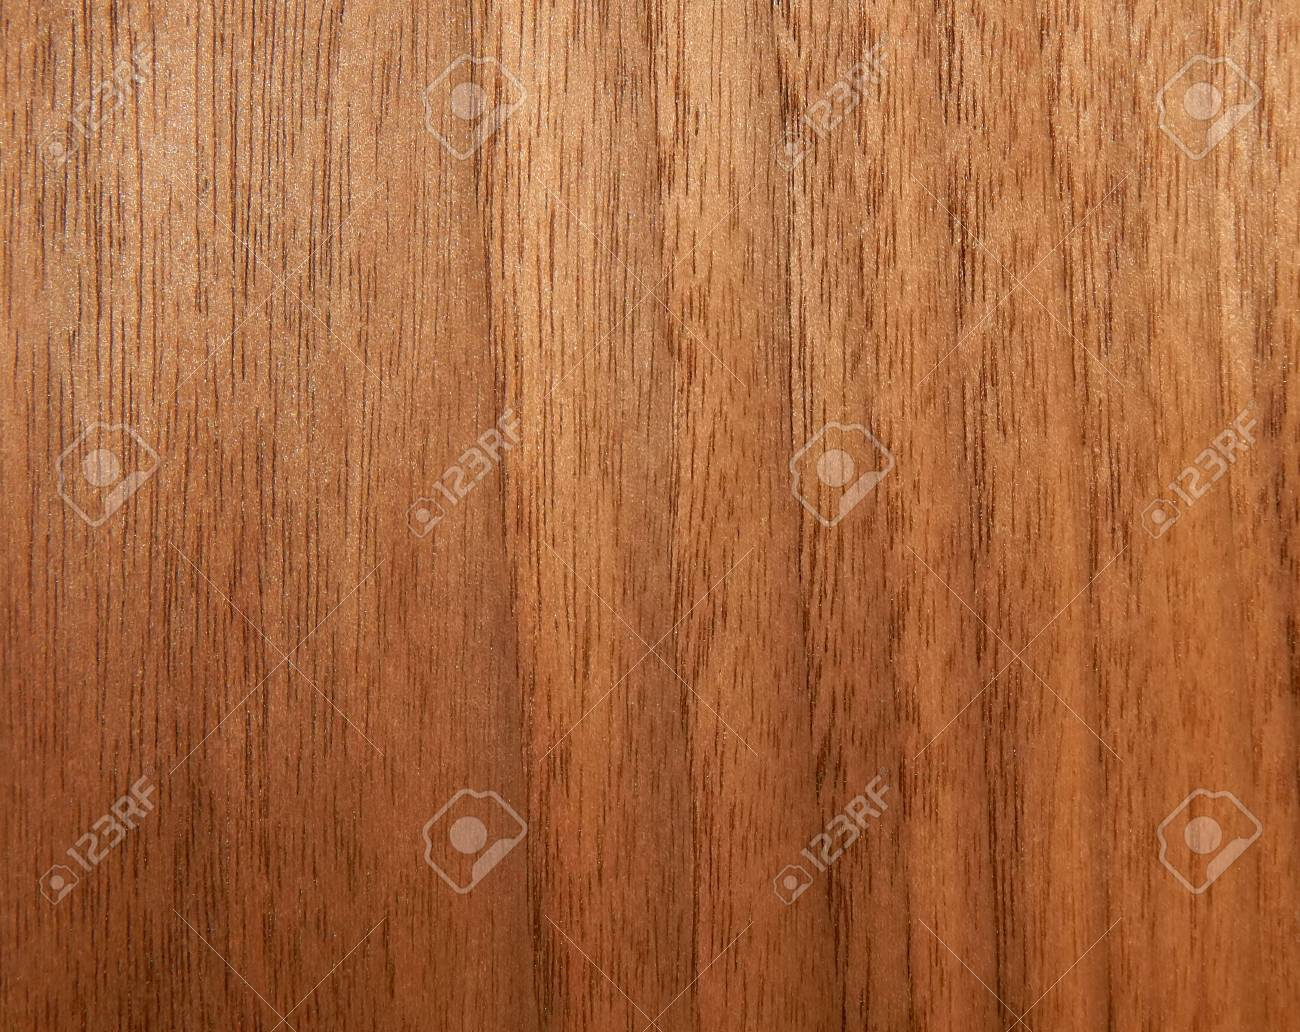 Texture Of A Wooden Surface Of An American Walnut Tree Wood